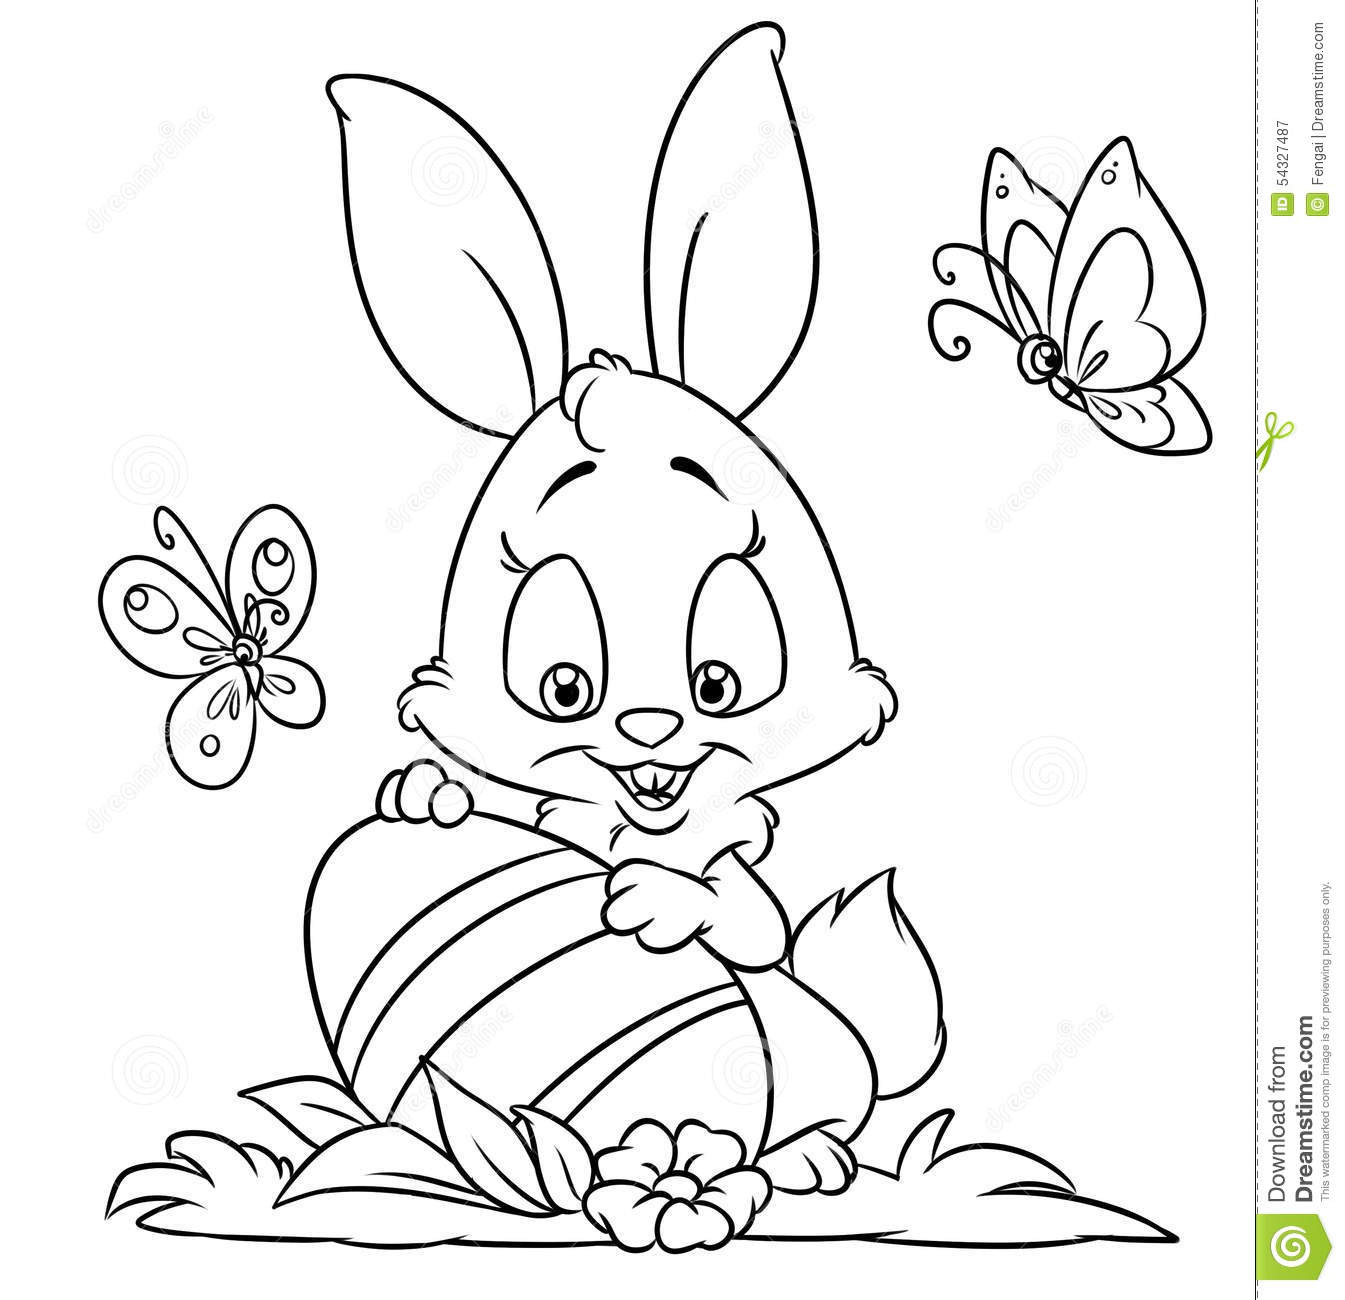 Best ideas about Free Coloring Pages Of The Easter Bunny . Save or Pin Happy Easter Bunny Coloring Pages – Happy Easter Now.